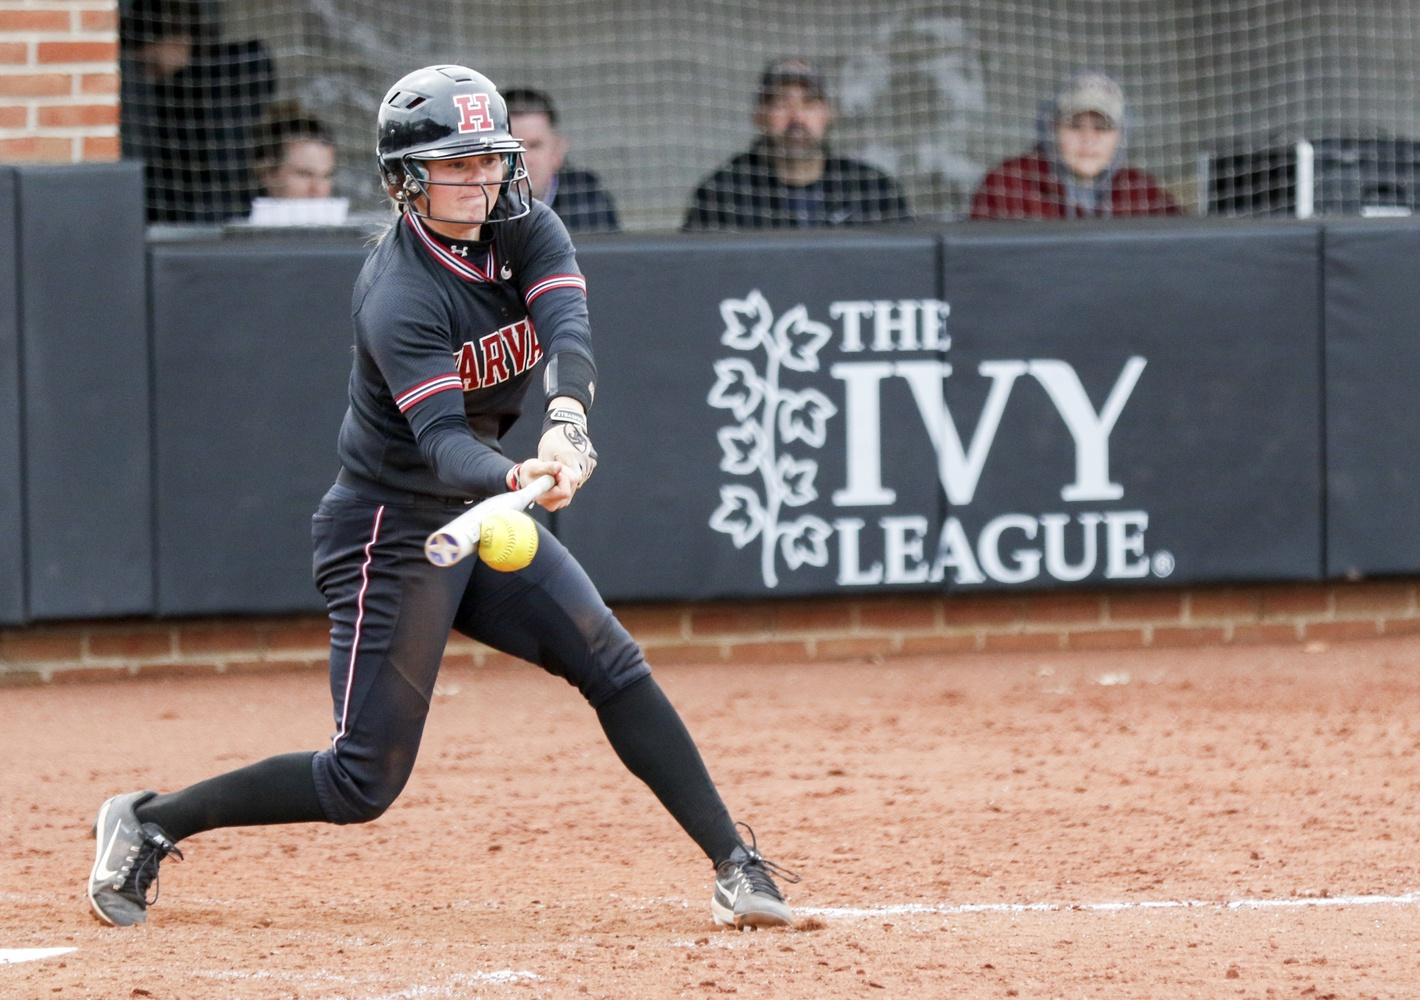 Lantz is one of the Crimson's premier power hitters. She launched a team-leading seven homers her freshman year, and she added four more this season after her return from a torn ACL.